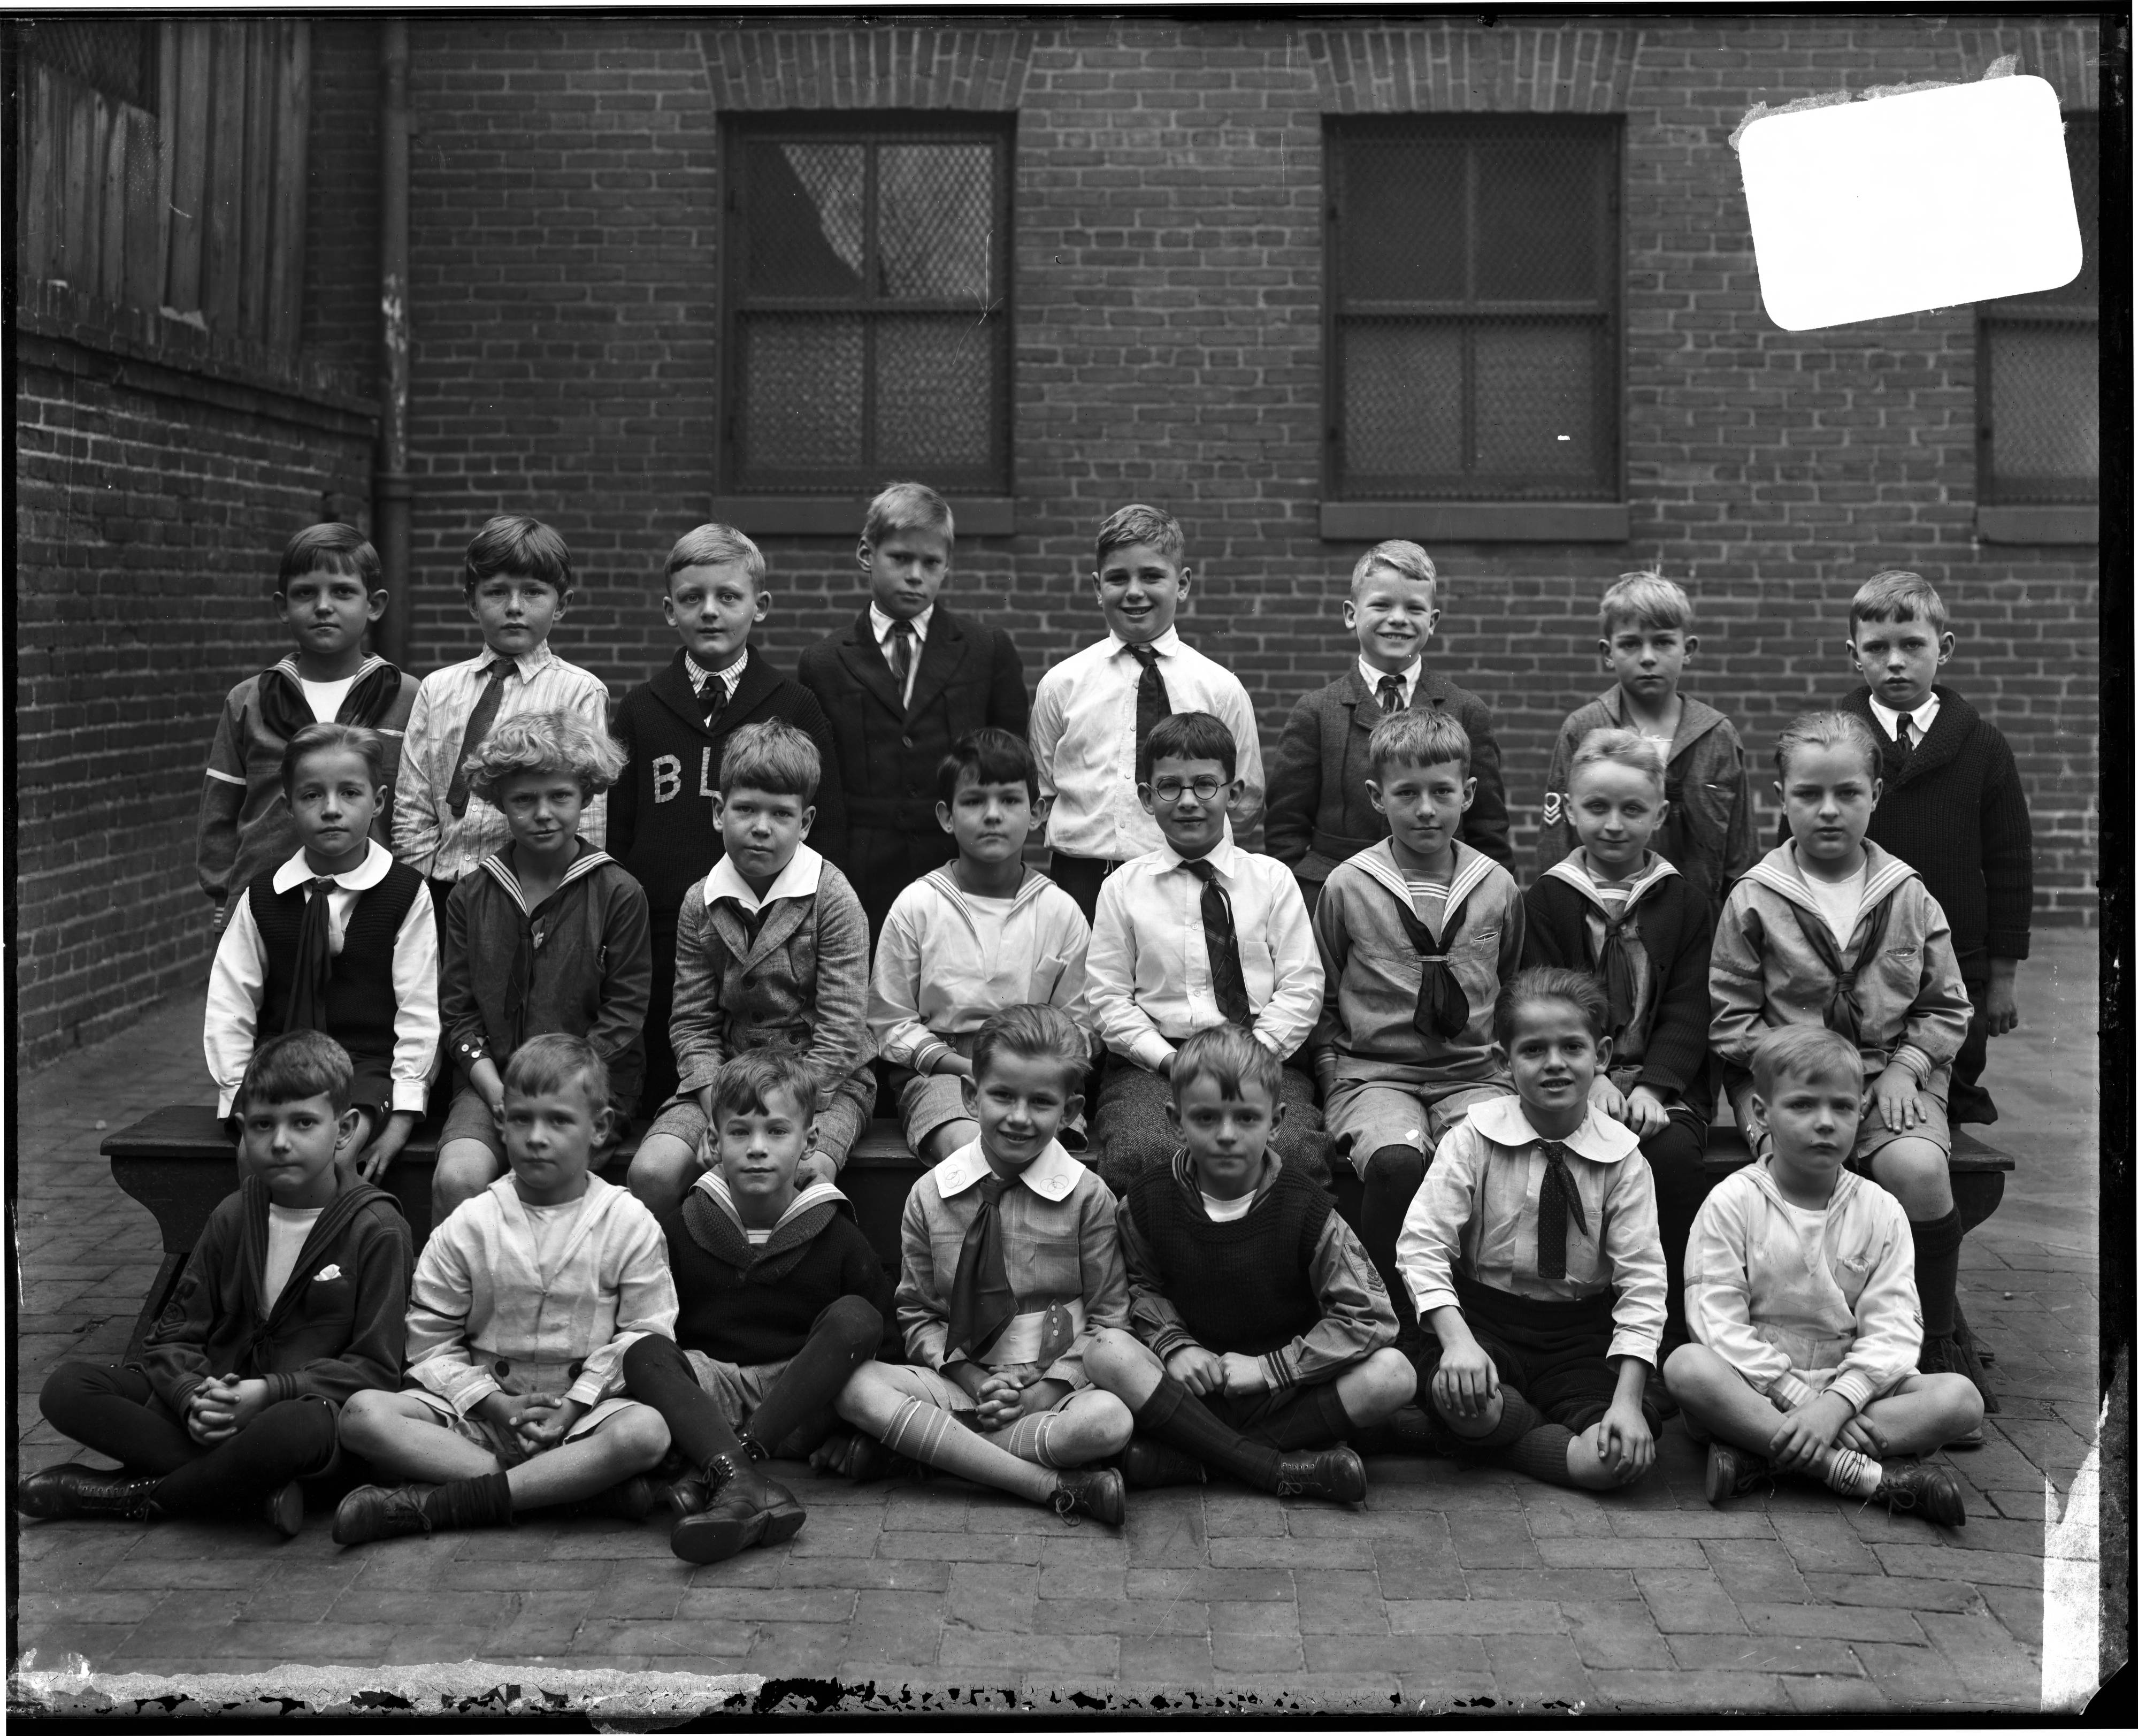 The Boys' Latin School 1922 Class Photo